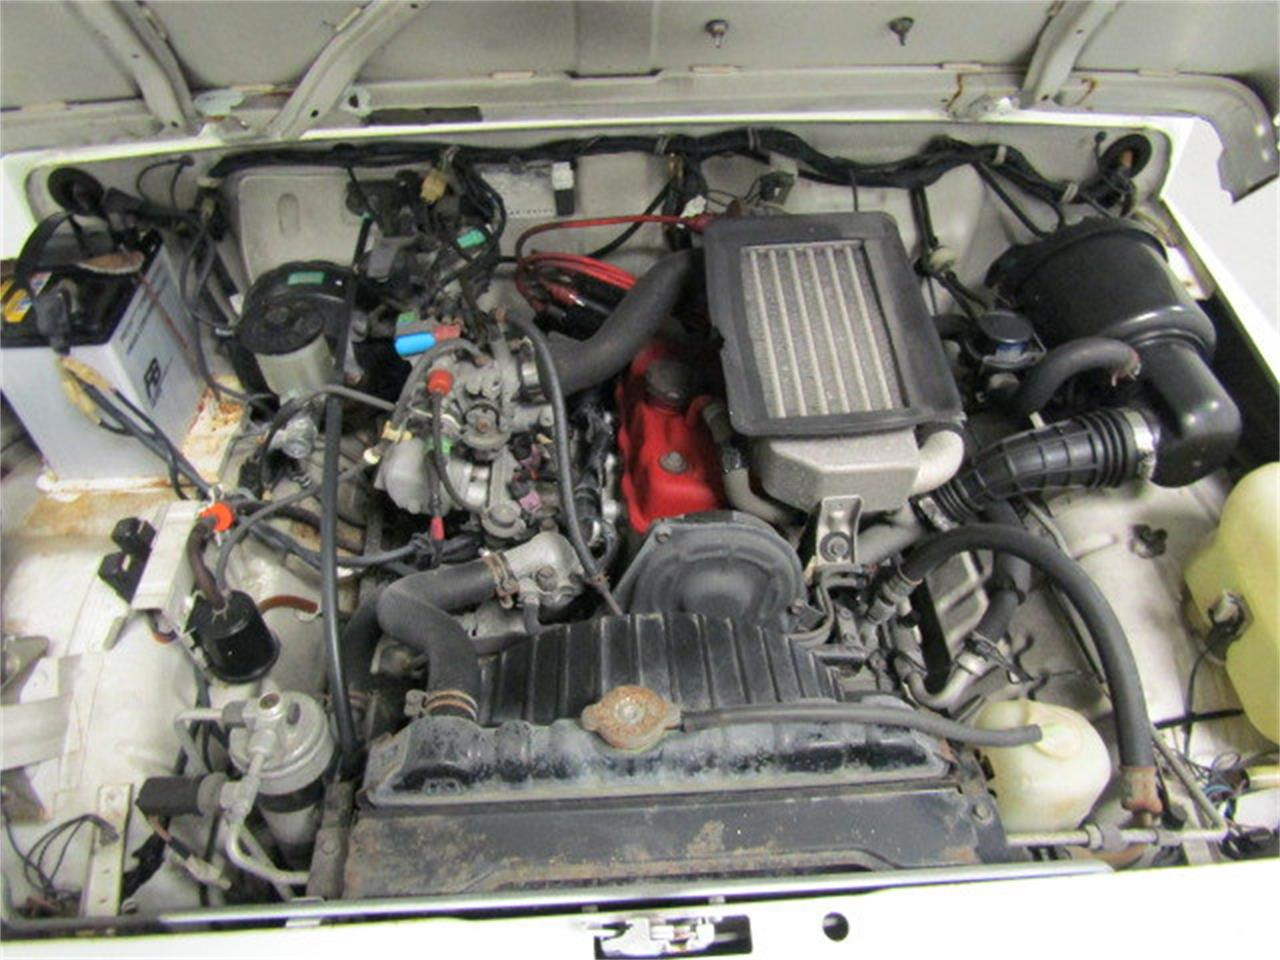 Large Picture of '87 Suzuki Jimmy located in Christiansburg Virginia - $3,999.00 - JM3N